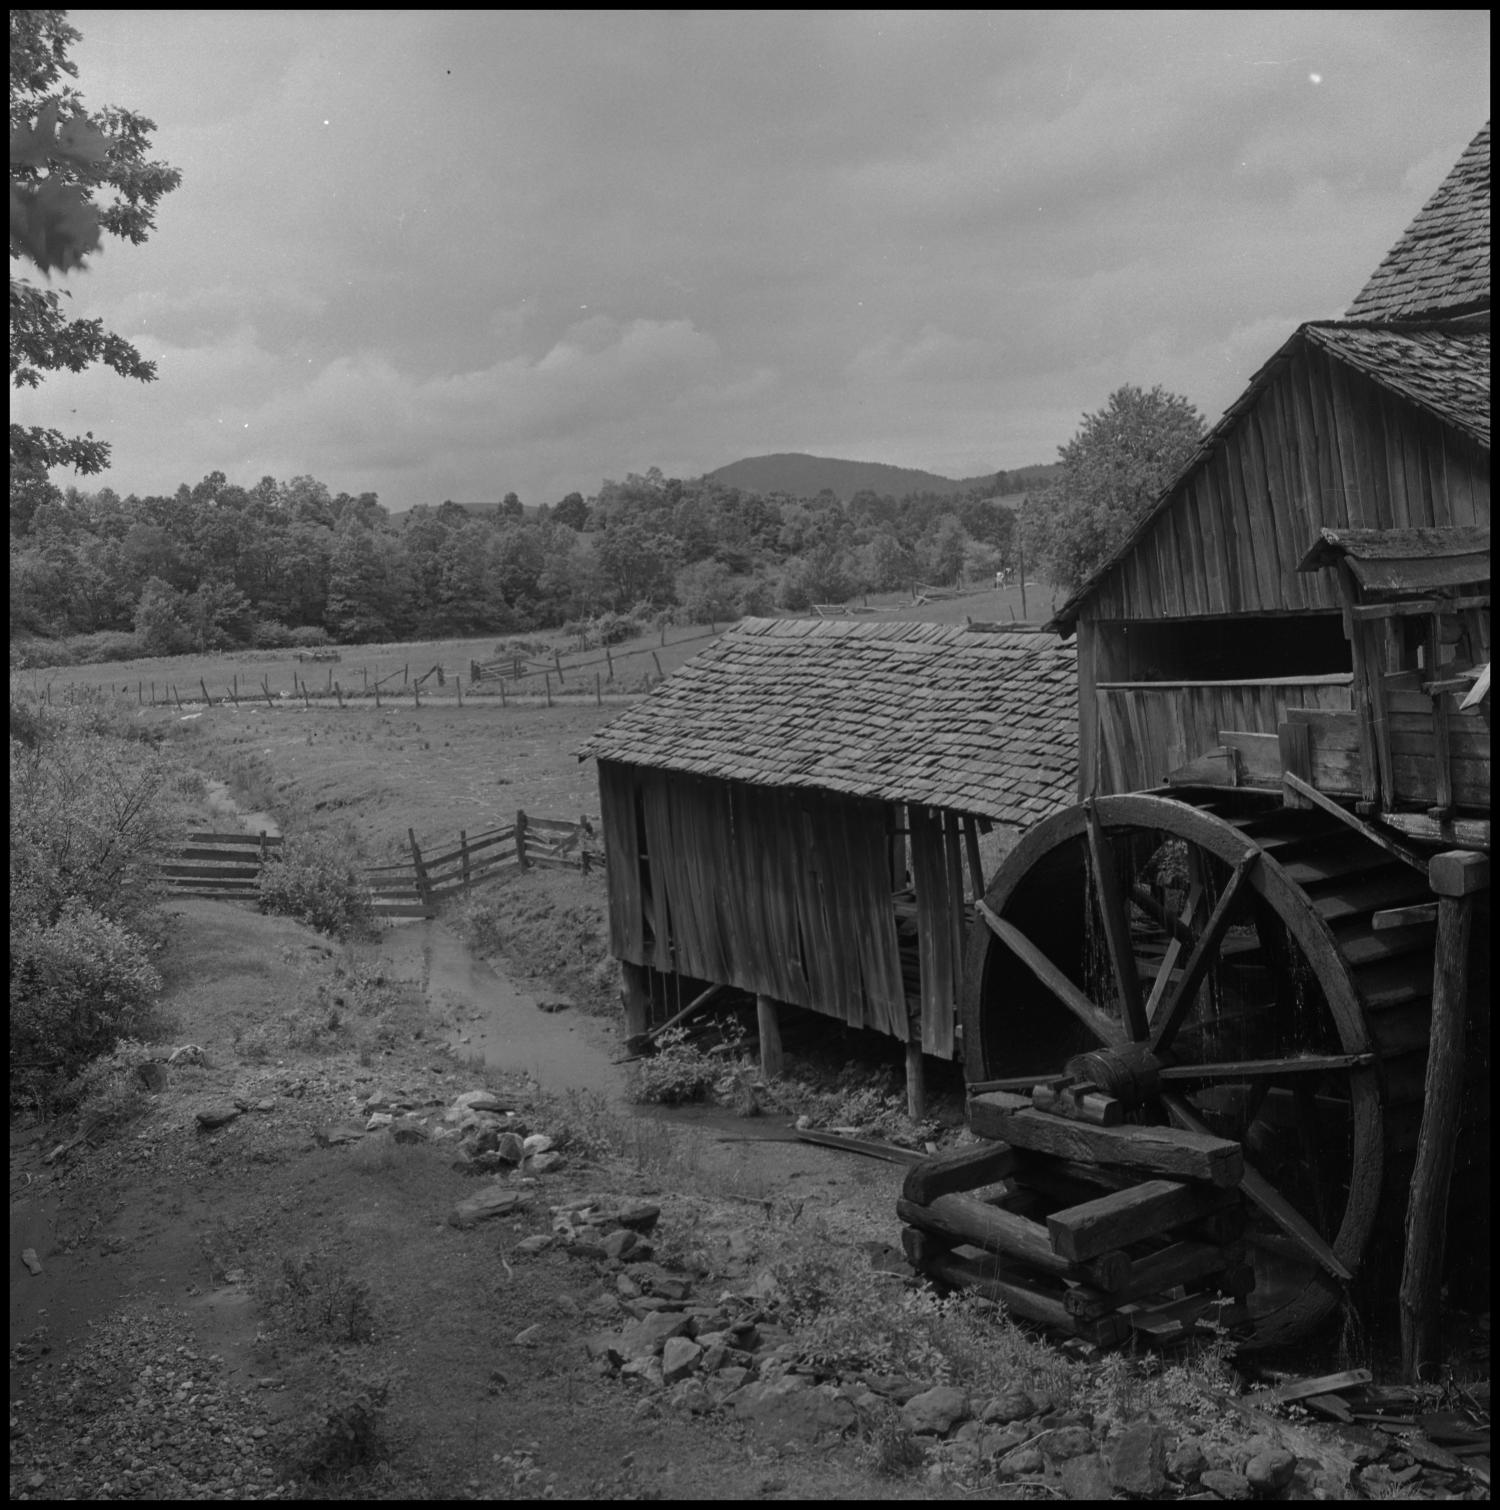 [Watermill creek], Photograph of the watermill rotating into a small creek. In the image, the creek extends past the fence along a road.,